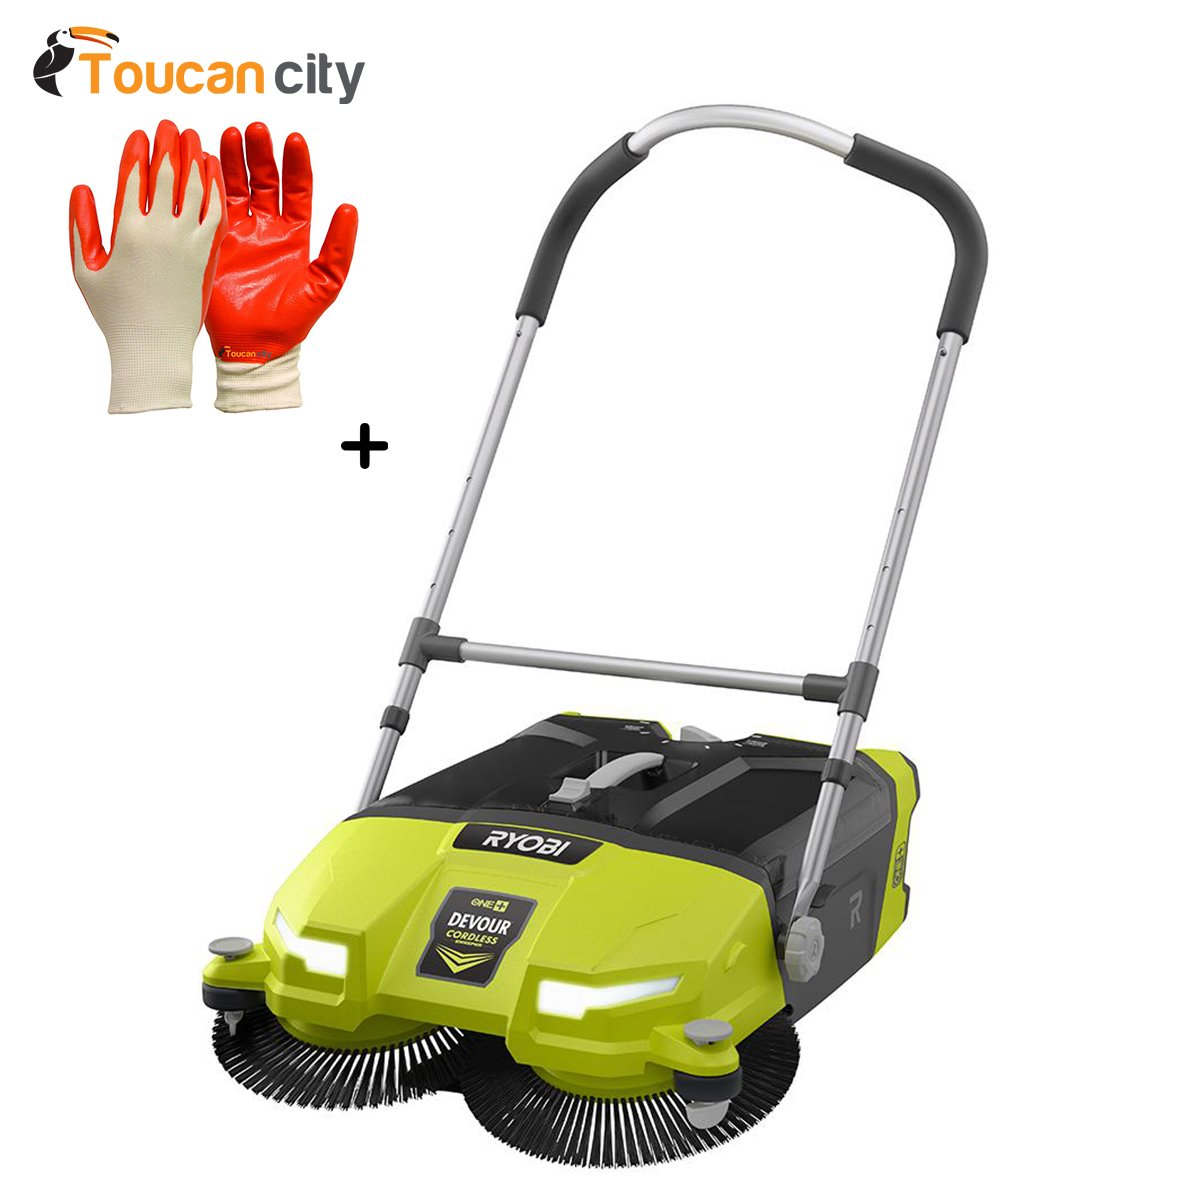 Ryobi 18-Volt 4.5 Gal. Devour Debris Sweeper (Tool-Only) P3260 and Toucan City Nitrile Dip Gloves 5-Pack